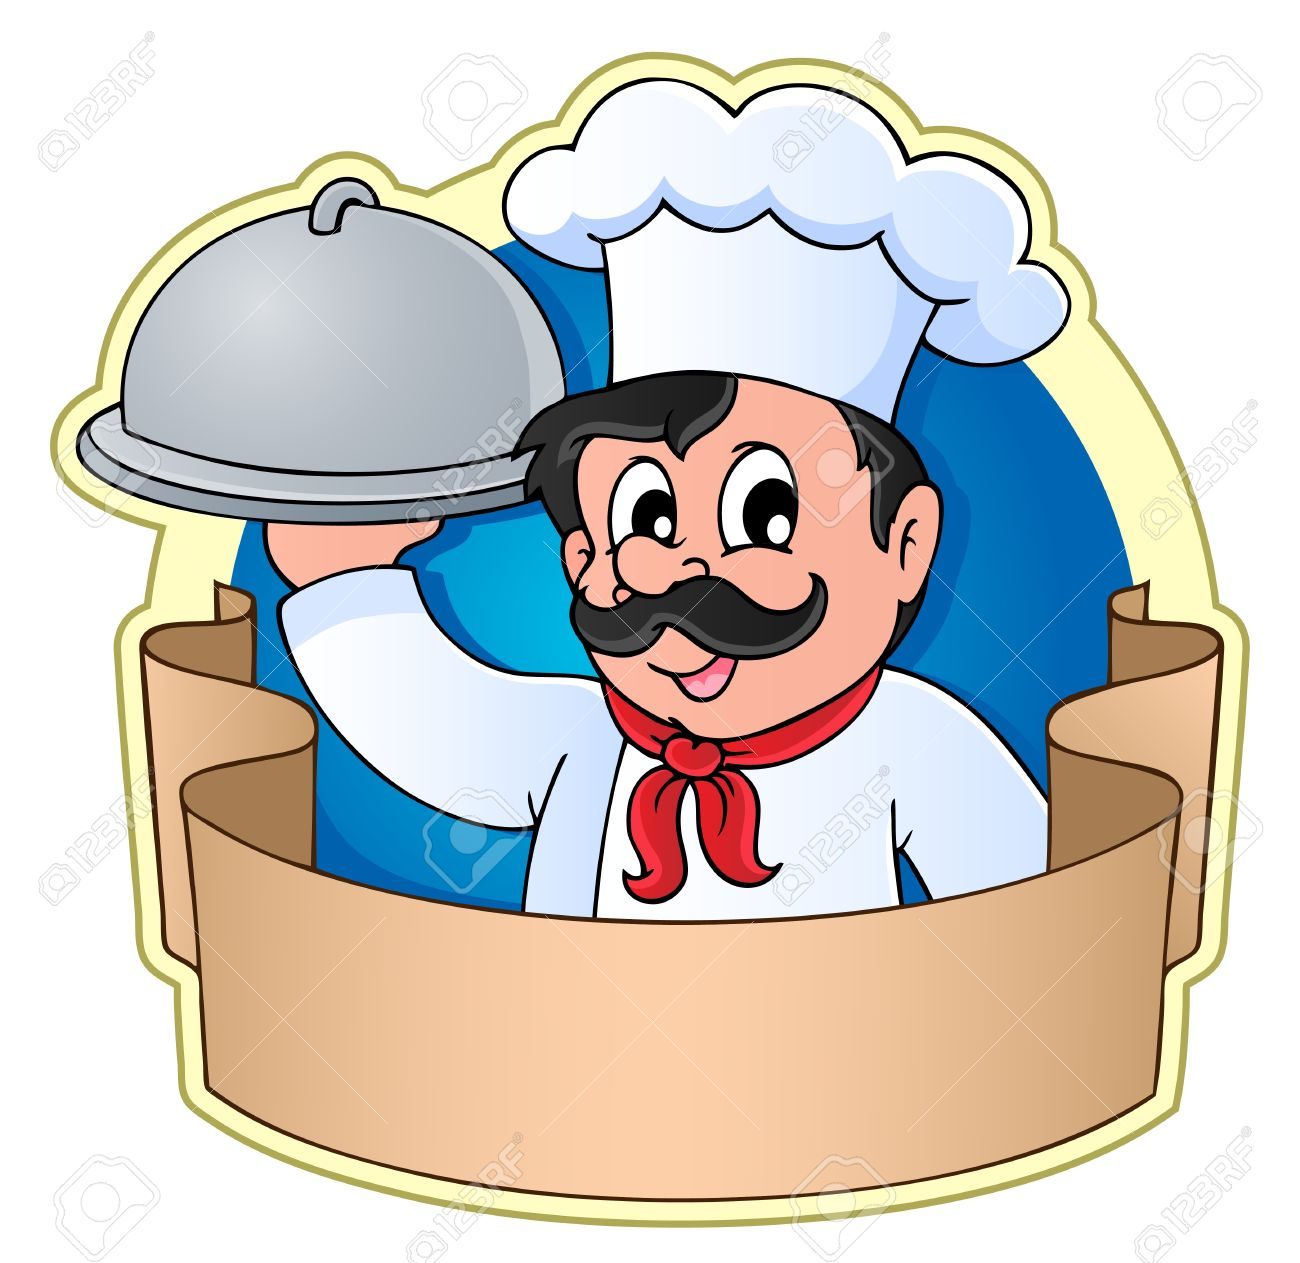 Catering chef clipart. Theme image vector illustration